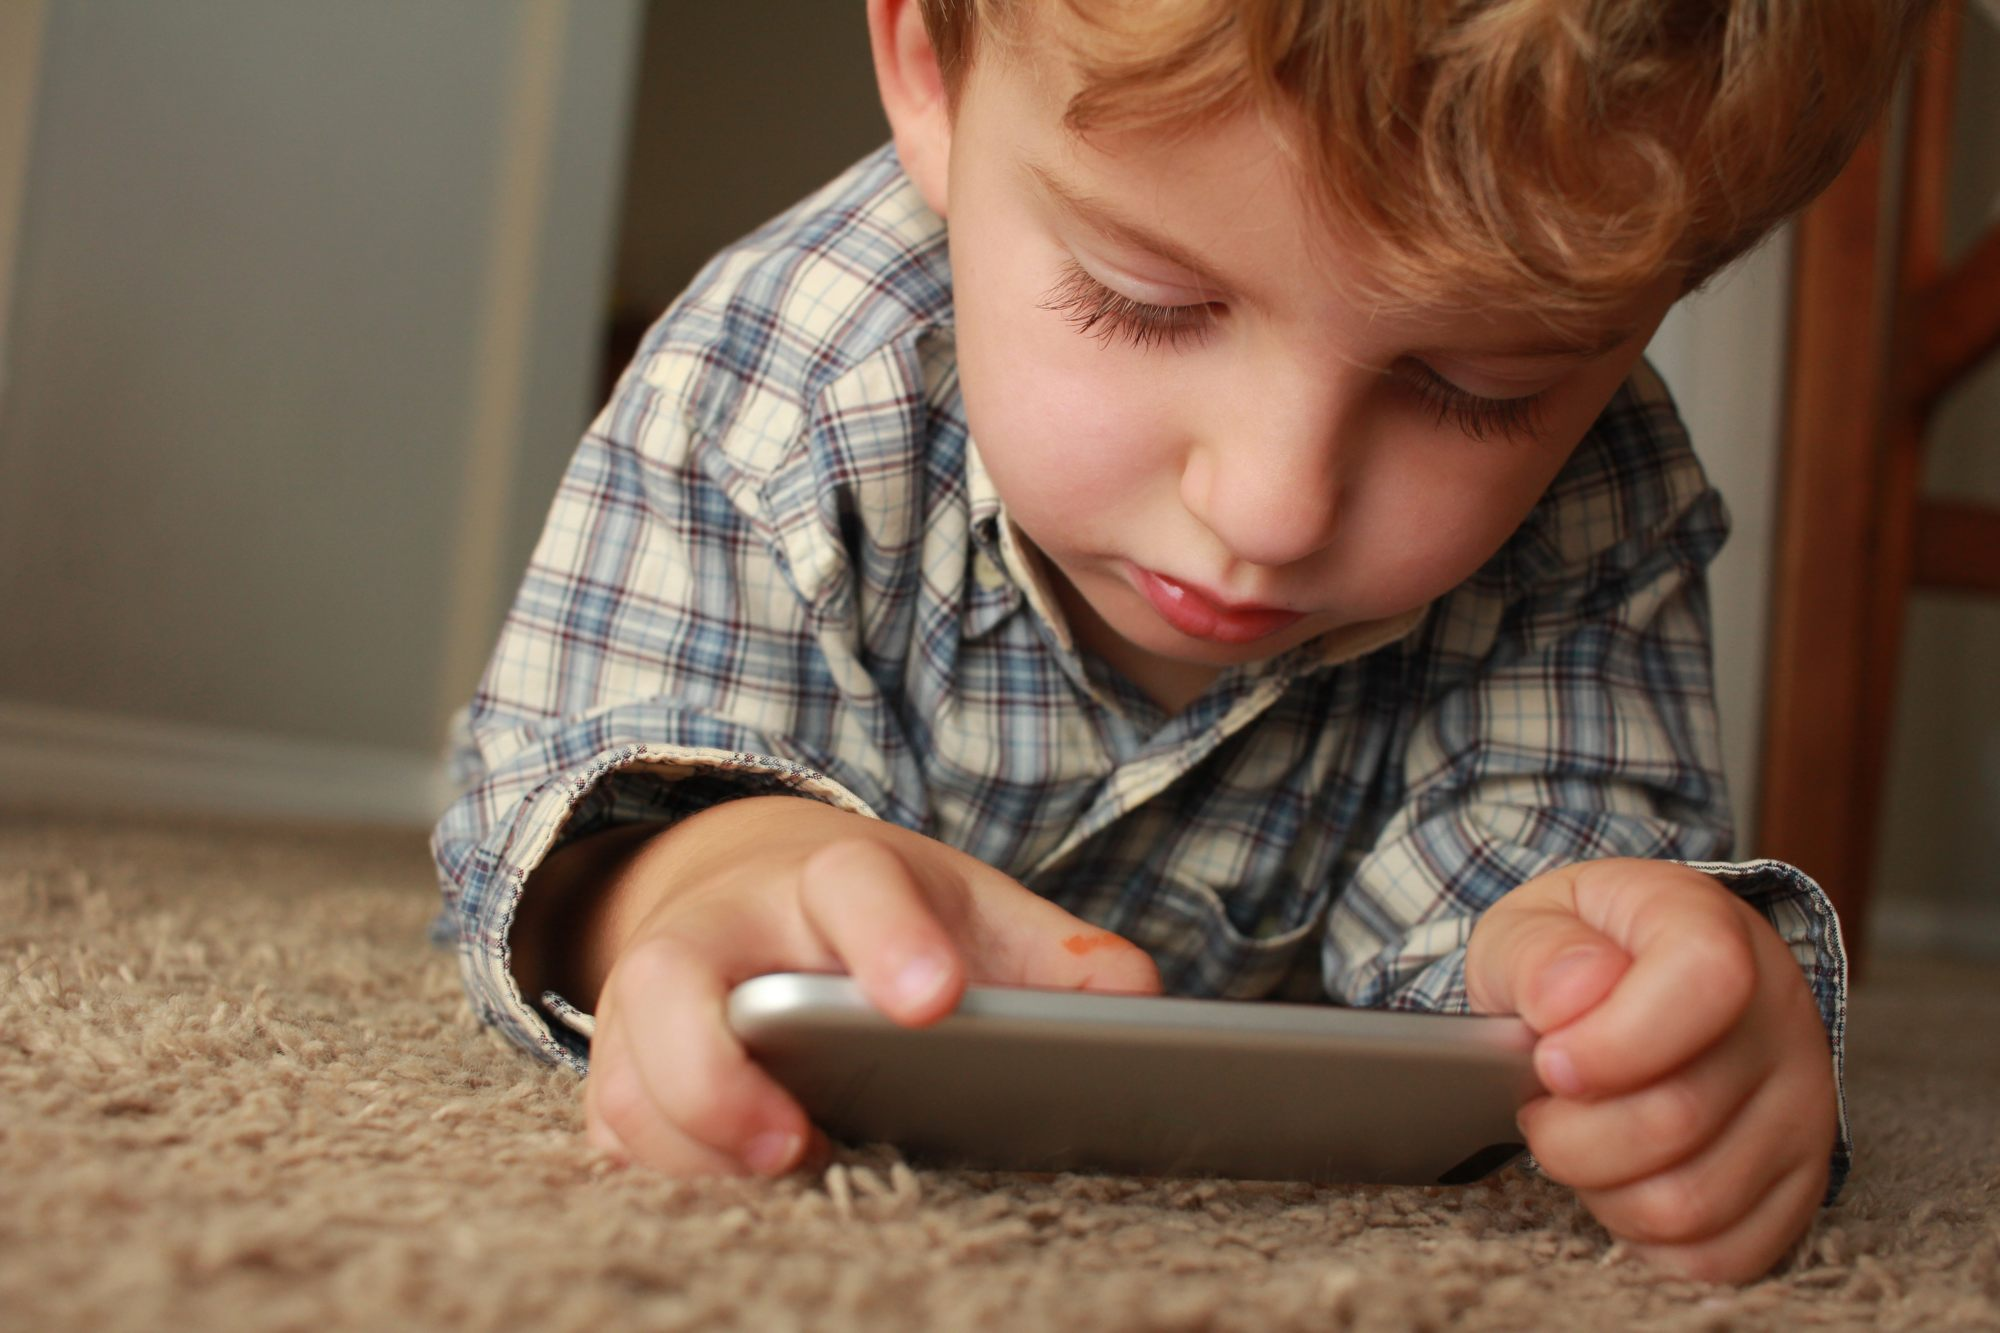 Children's introduction to the cell phone world | The Wizard Watch